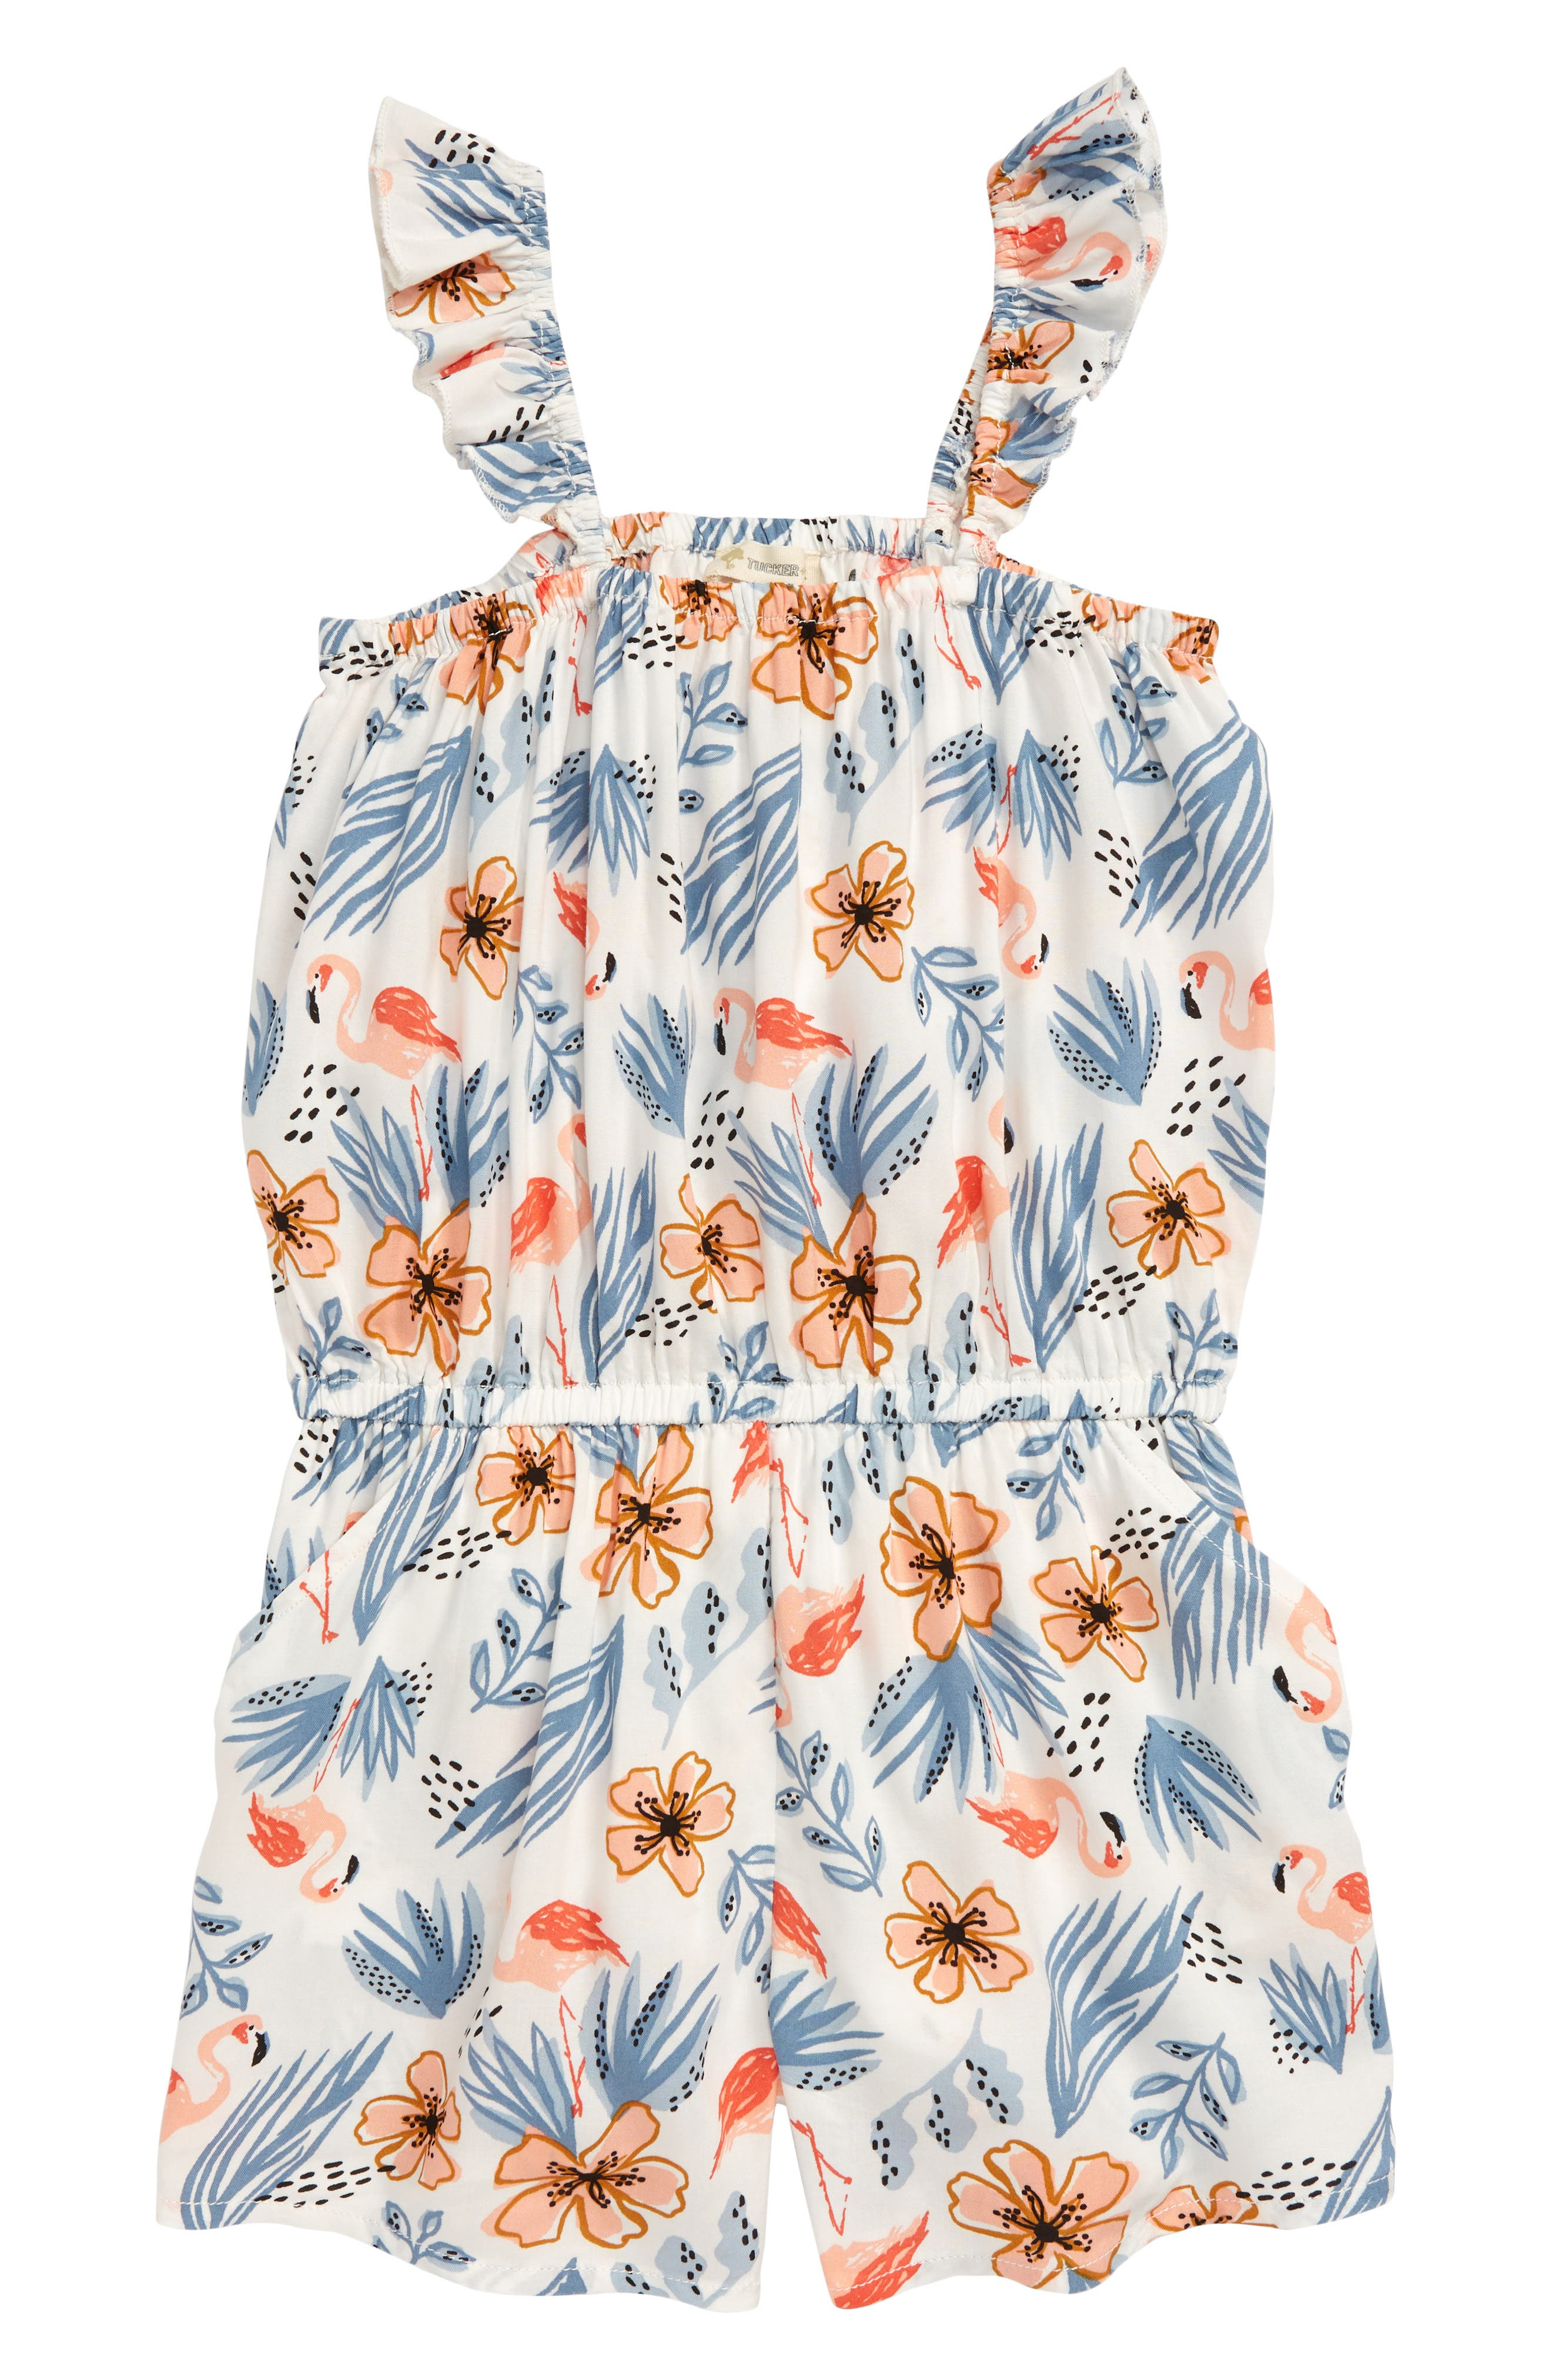 Girls Tucker  Tate Floral Print Romper Size S (78)  Ivory